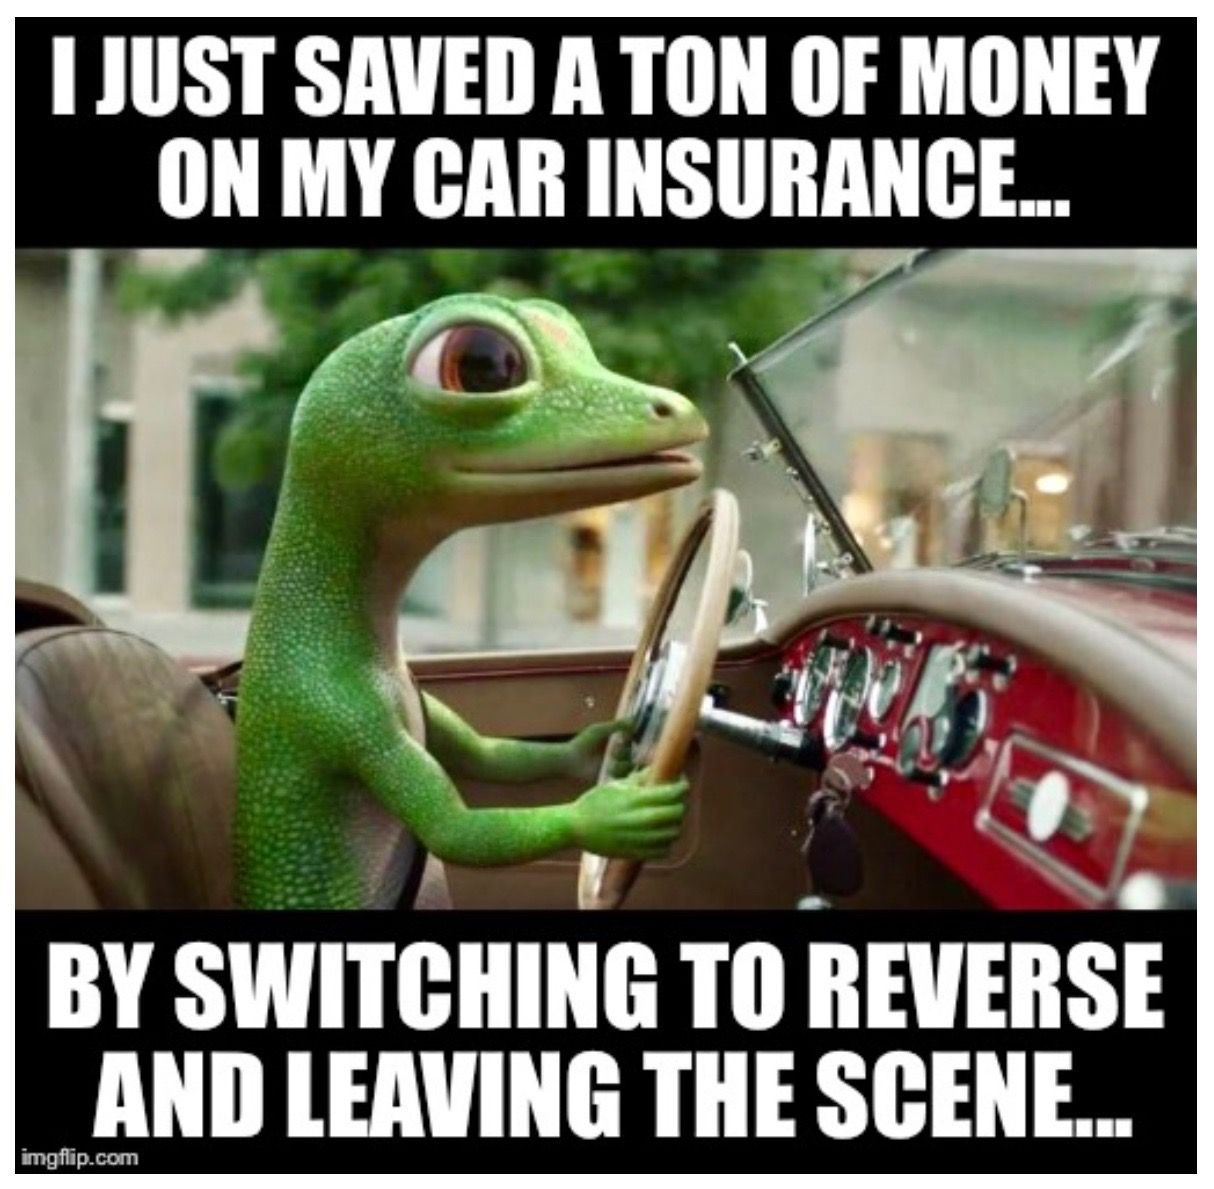 Geico Saved Quote: I Just Saved A Ton Of Money... On My Car Insurance